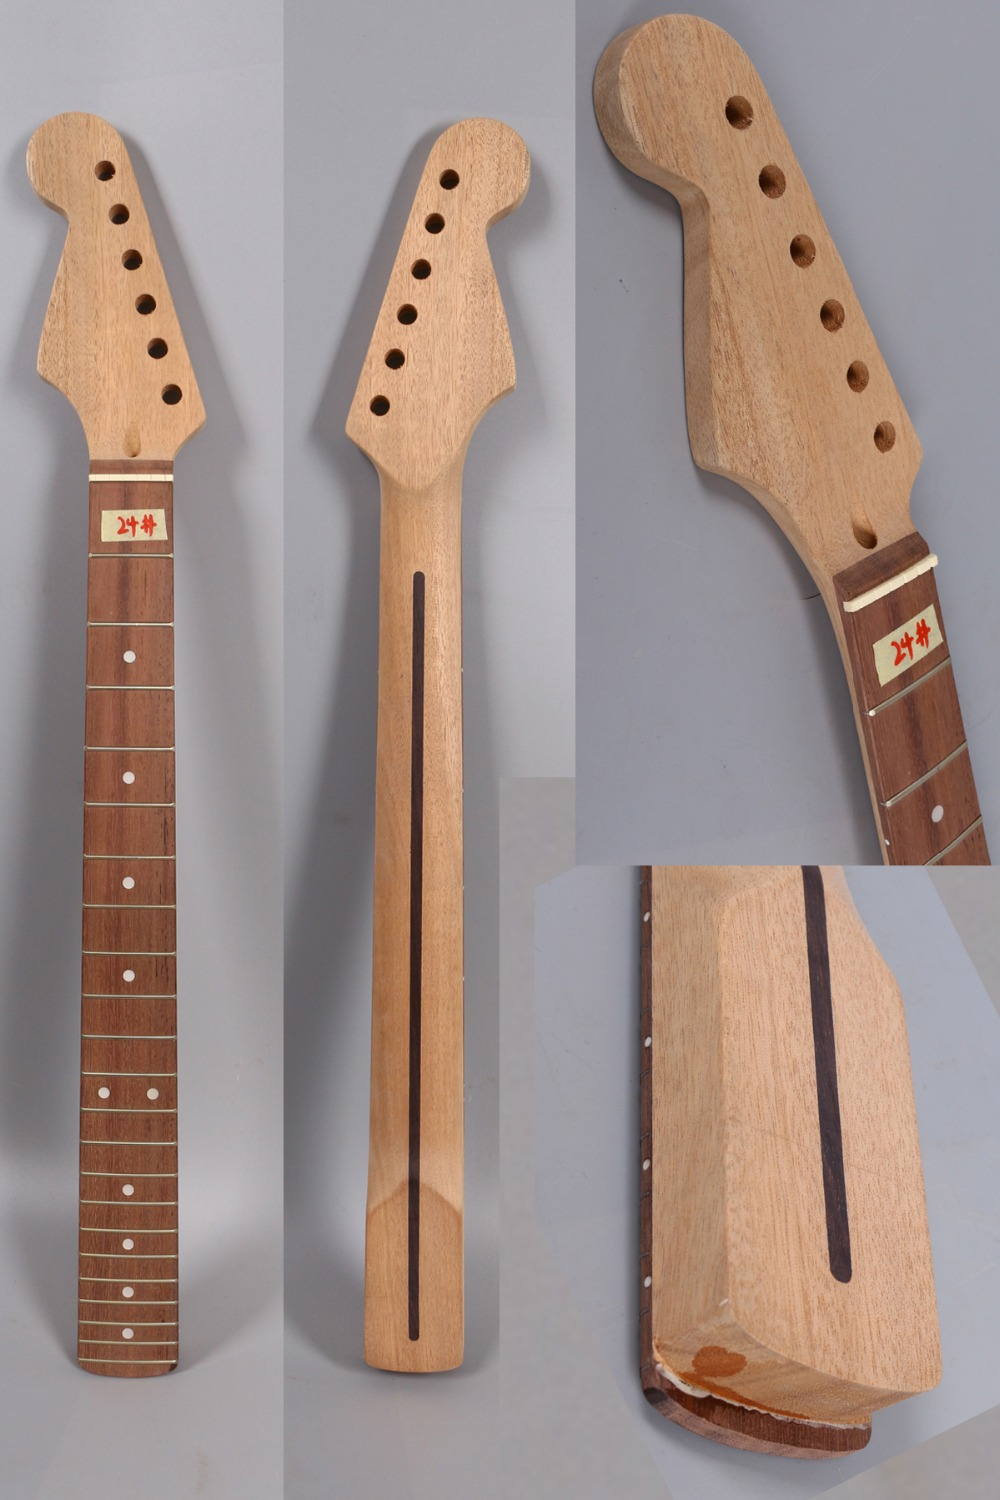 Yinfente Unfinished electric guitar neck replacement 22 fret 25.5 inch Reverse head rosewood fretboard Dot inlay #24 yinfente electric guitar neck 22 fret reversed head rosewood fretboard 25 5 inch maple locking nut shark inlay 13